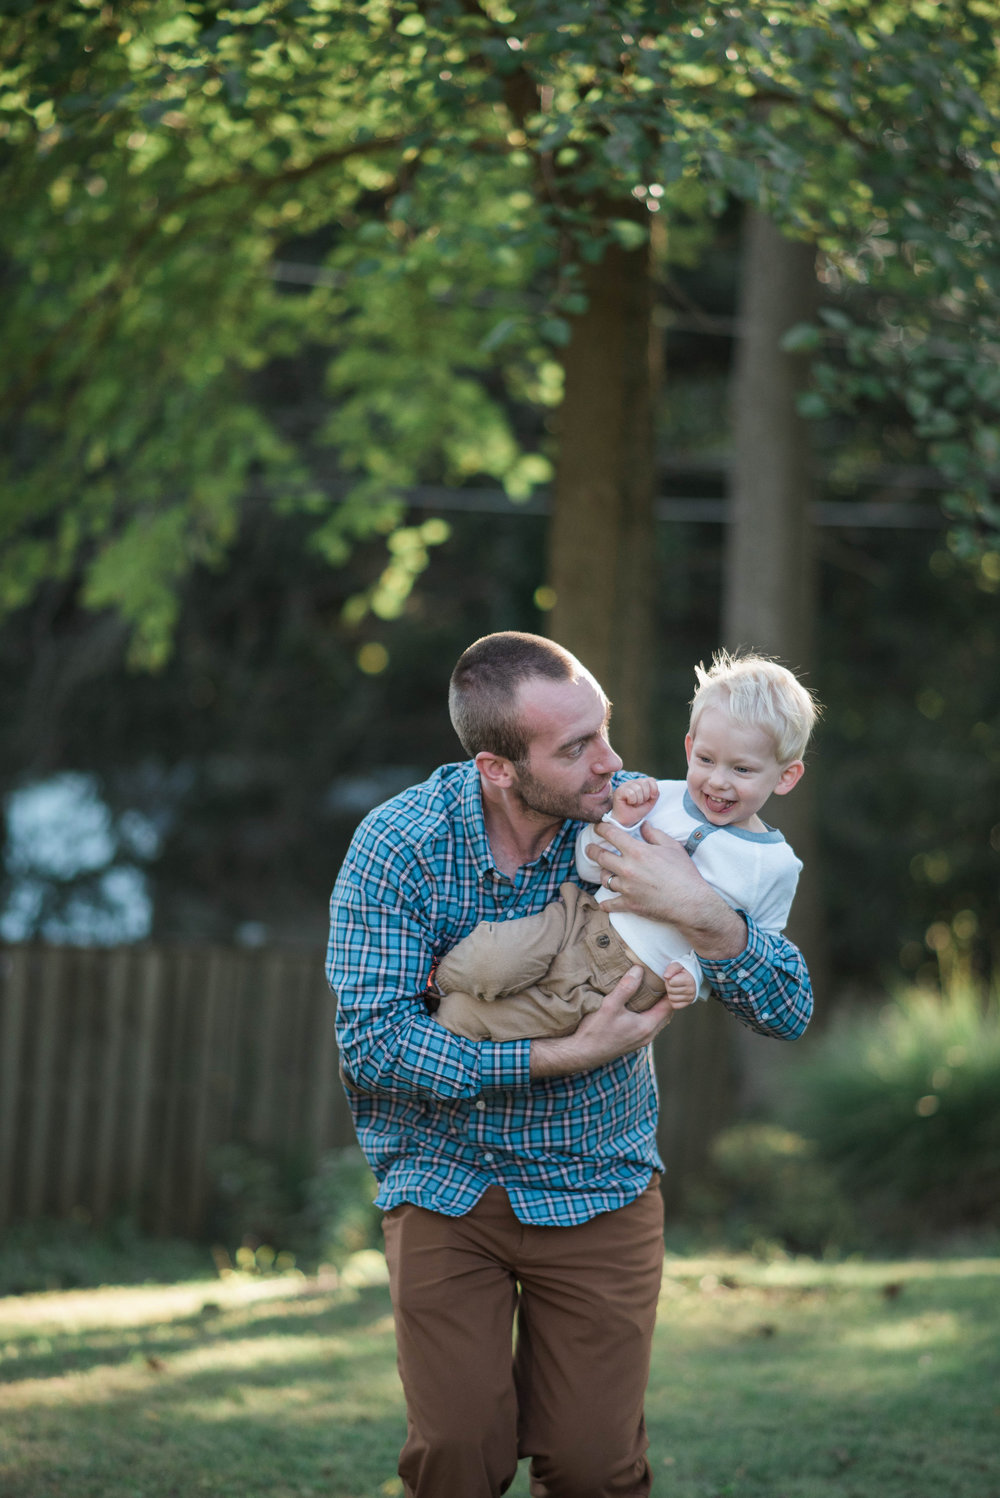 Dad and Son | Family Photography | Maryland, Washington DC, Pennsylvania, Virginia Portrait Photographer | Anne Casey Photography